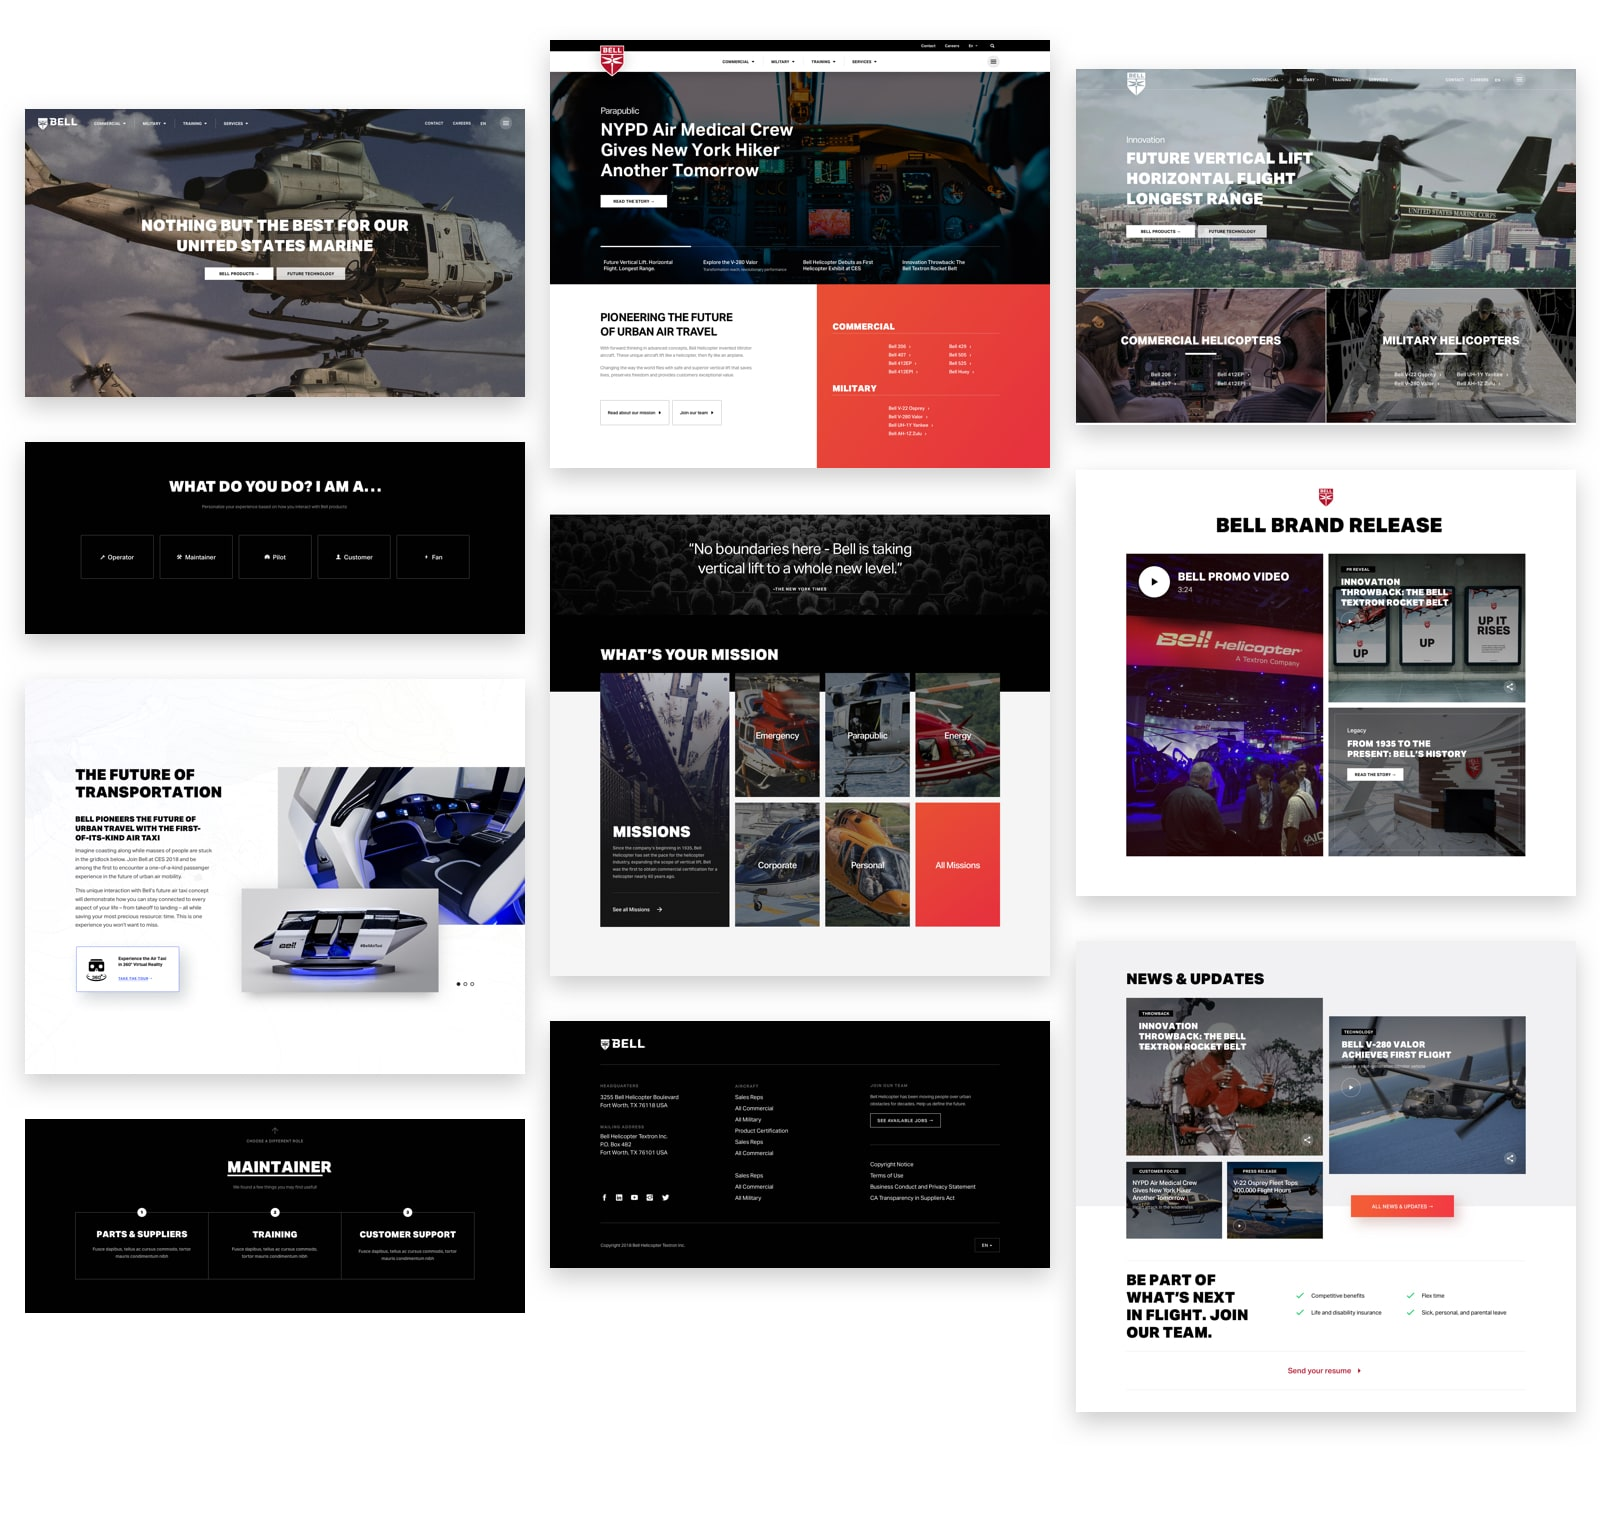 Bell Helicopter website design concept exploration by Spacetime